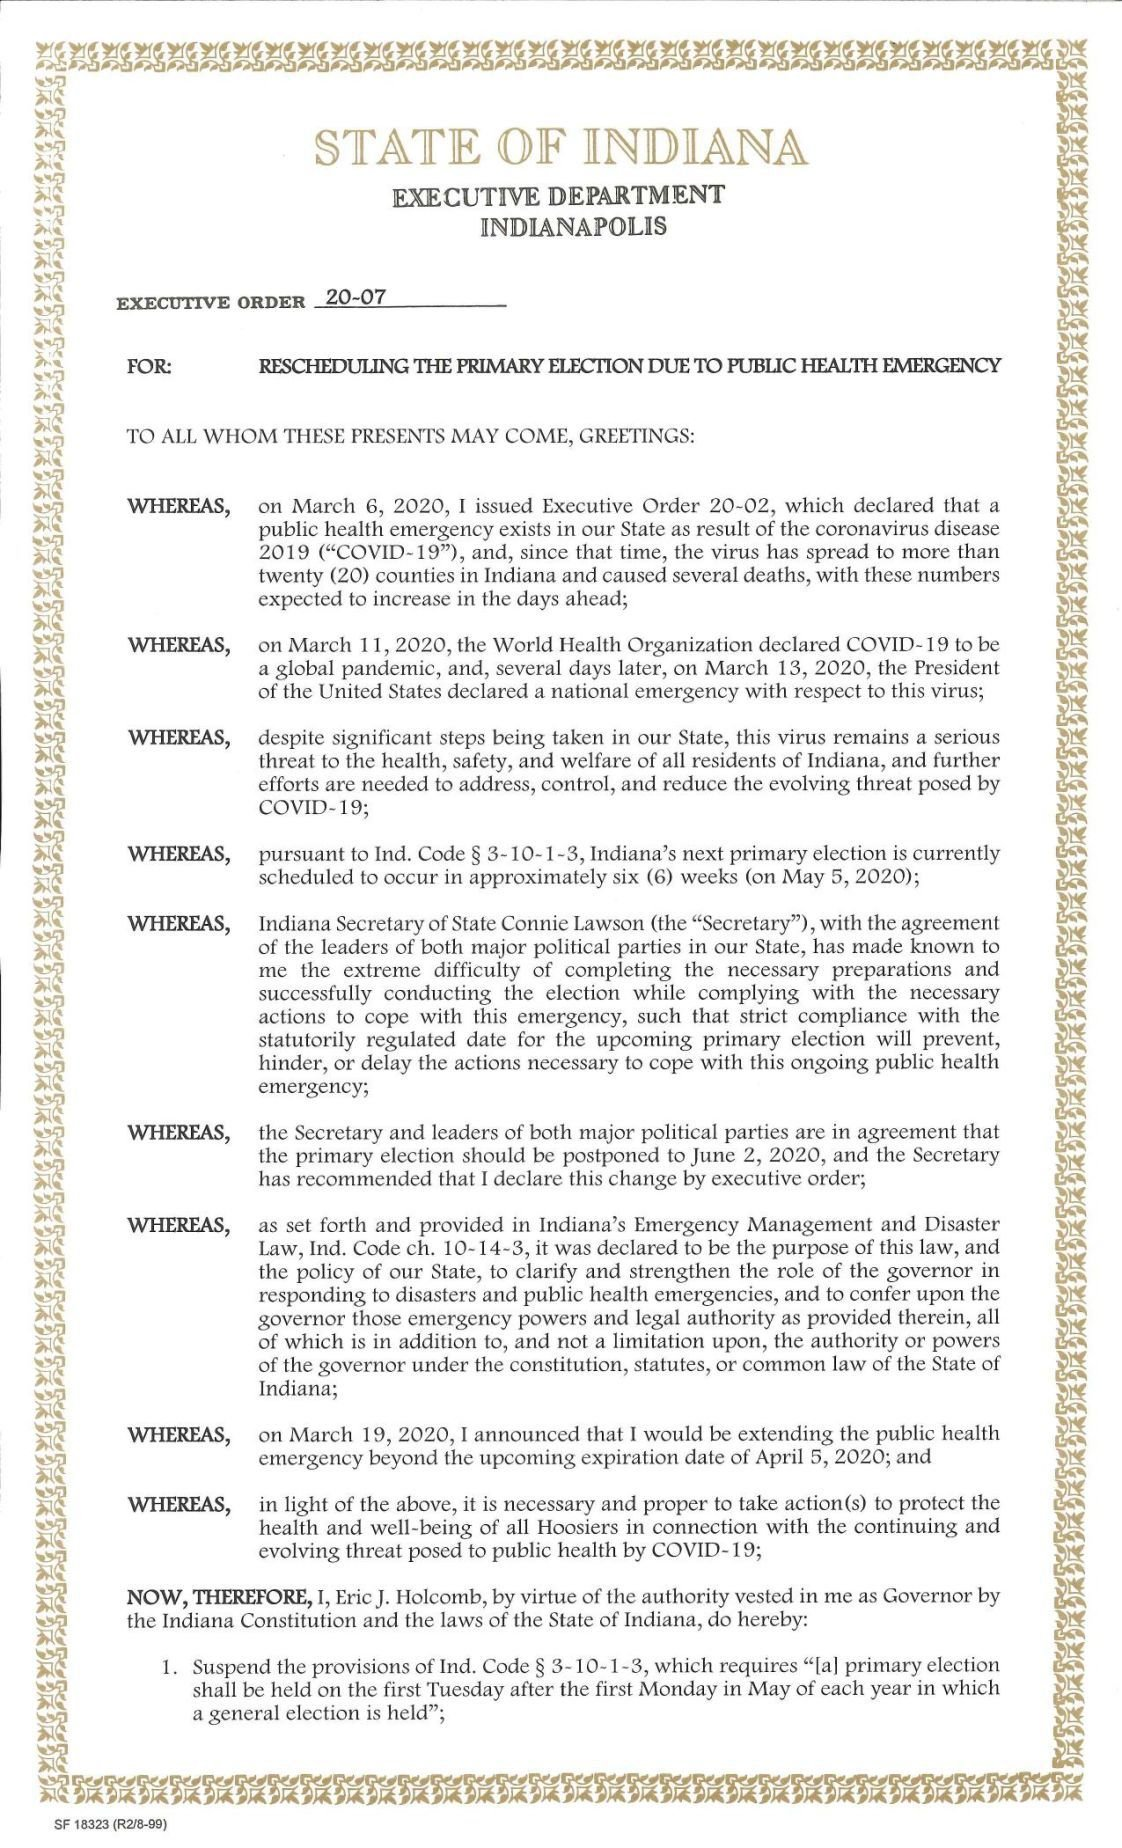 Gov. Holcomb Executive Order 20-07: Moving the primary elections to June 2